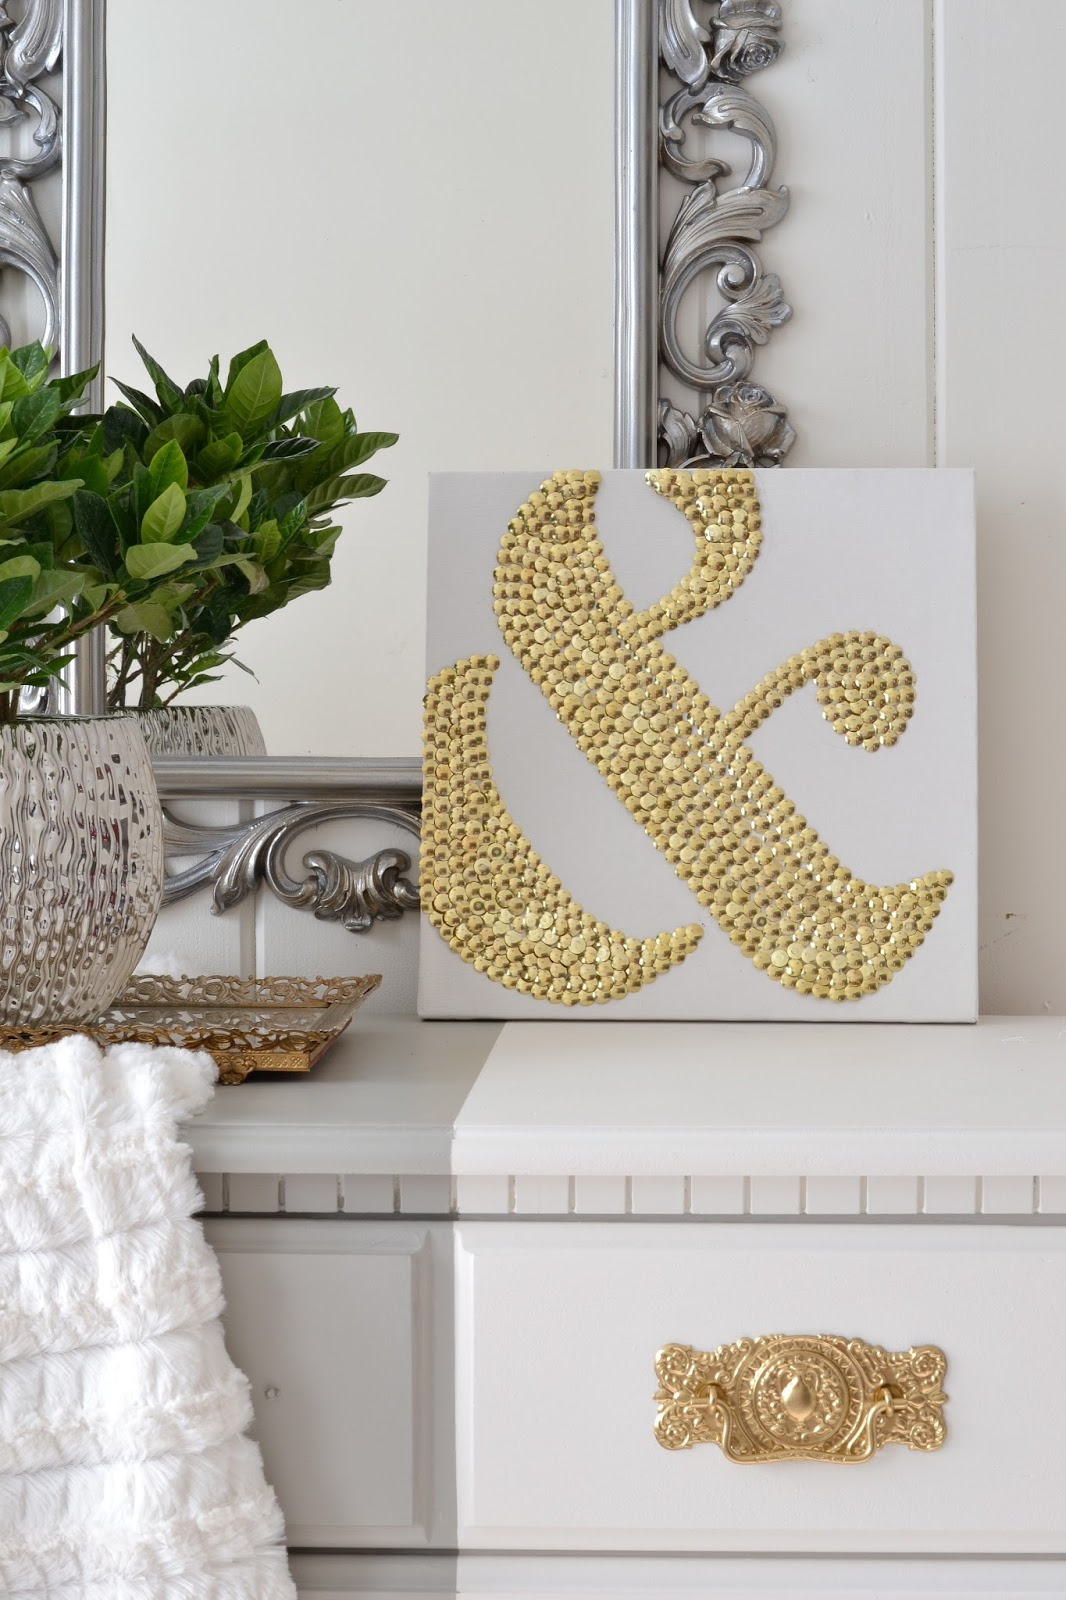 Livelovediy how to make diy ampersand art using thumbtacks for Ampersand decor